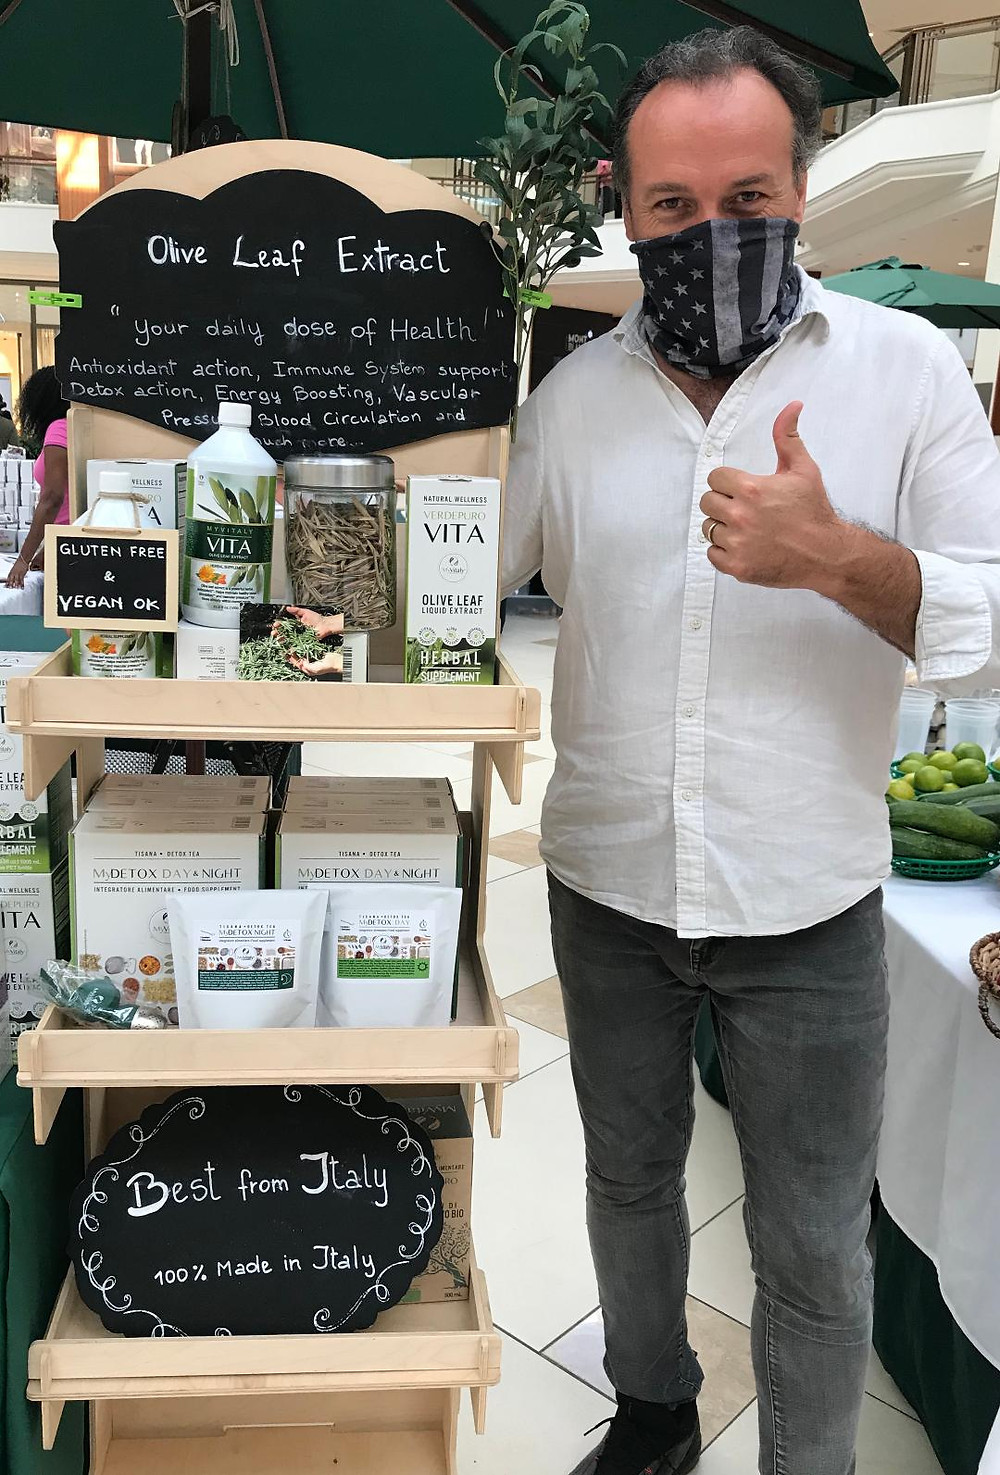 Marco Zanna at Aventura Mall promoting the healthy benefits of the olive leaf